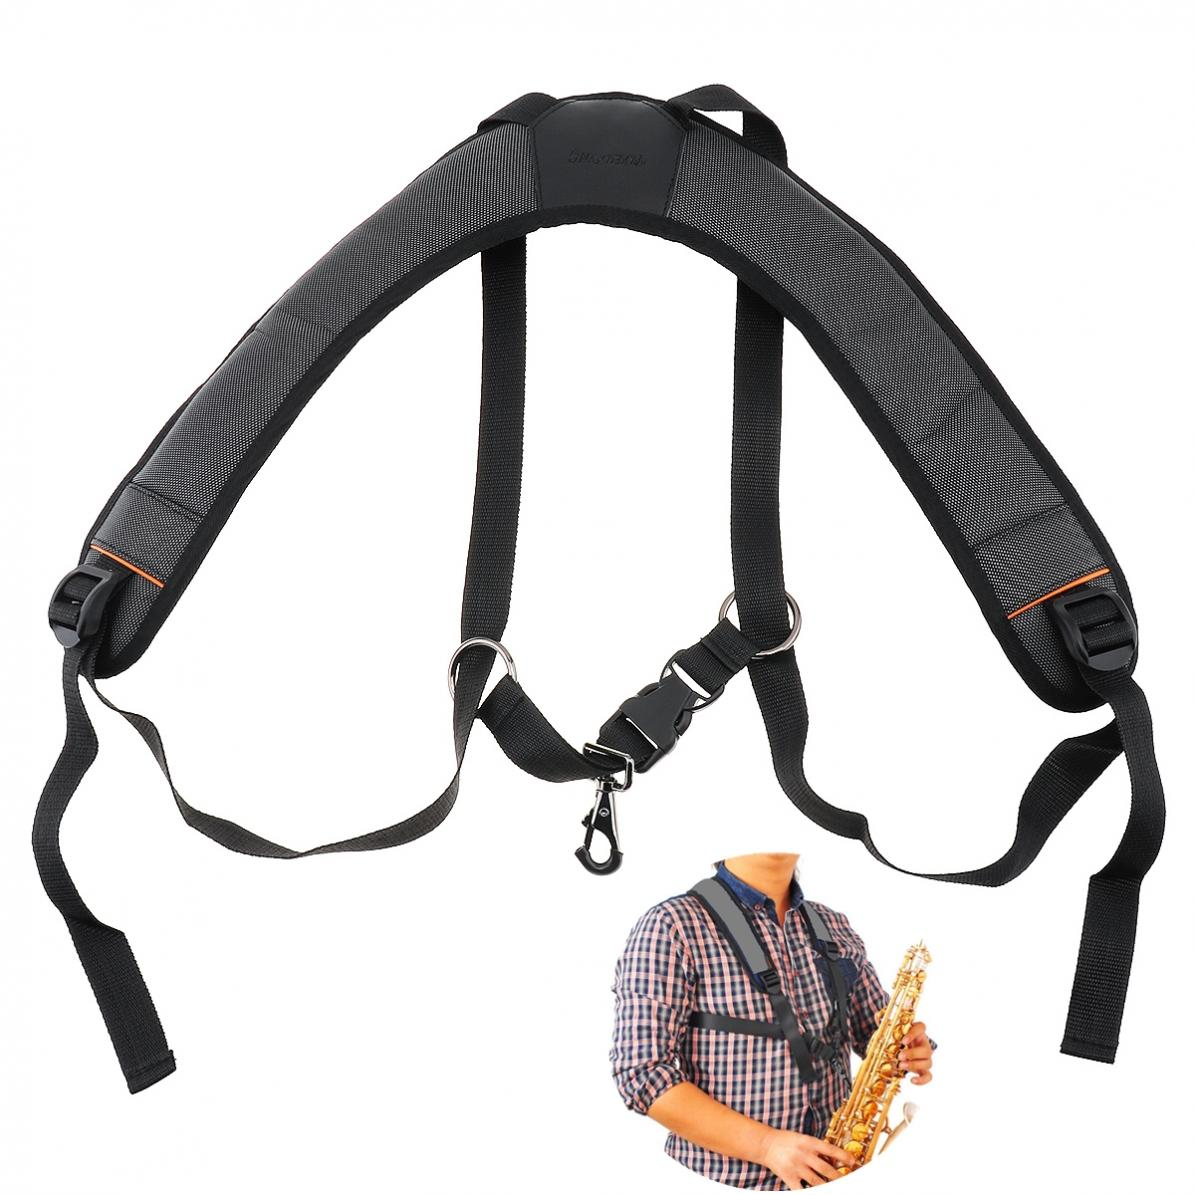 Saxophone Strap Adjustable Oxford Fabric Wider Add Cotton  Sax Holder Double Shoulder with Steel Hook for Alto Tenor Soprano Sax